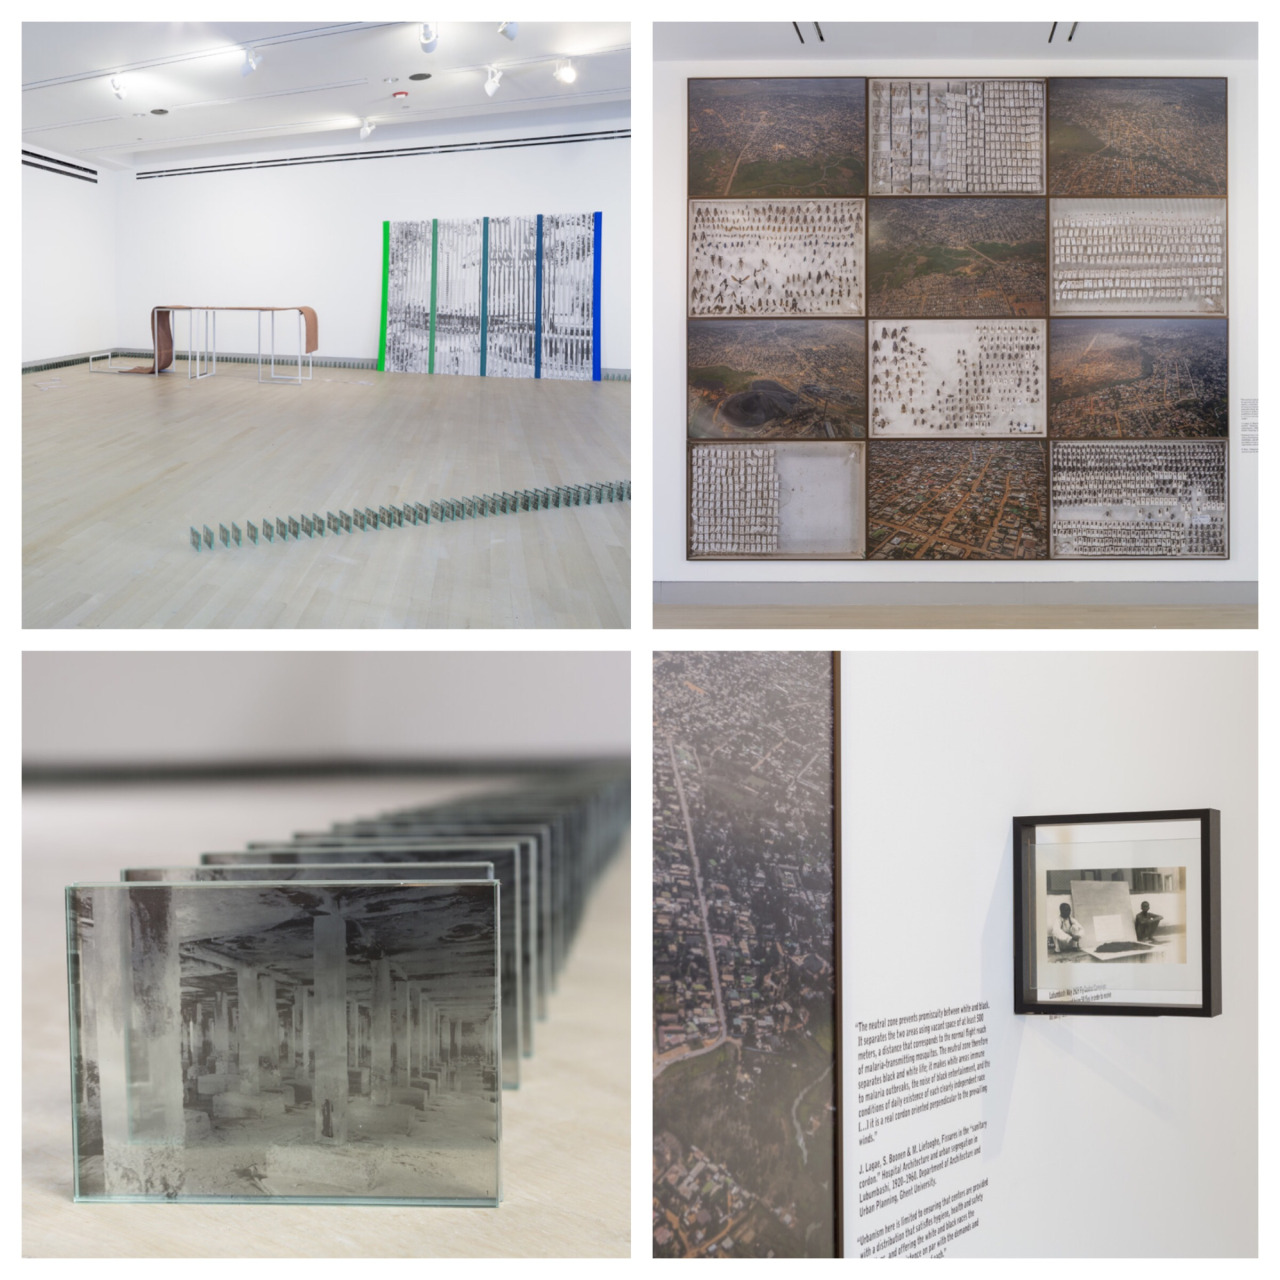 Installation views from Logan Gallery at University of Chicago last month. The exhibition: So-called Utopias with work by Jonathas de Andrade, Sammy Baloji, Latoya Ruby Frazier, Sreshta Rit Premnath and Melanie Smith. Curated by Yesomi Umolu ©Clare Britt Photo #logancenterforthearts #uofchicago #utopia #chicagoart